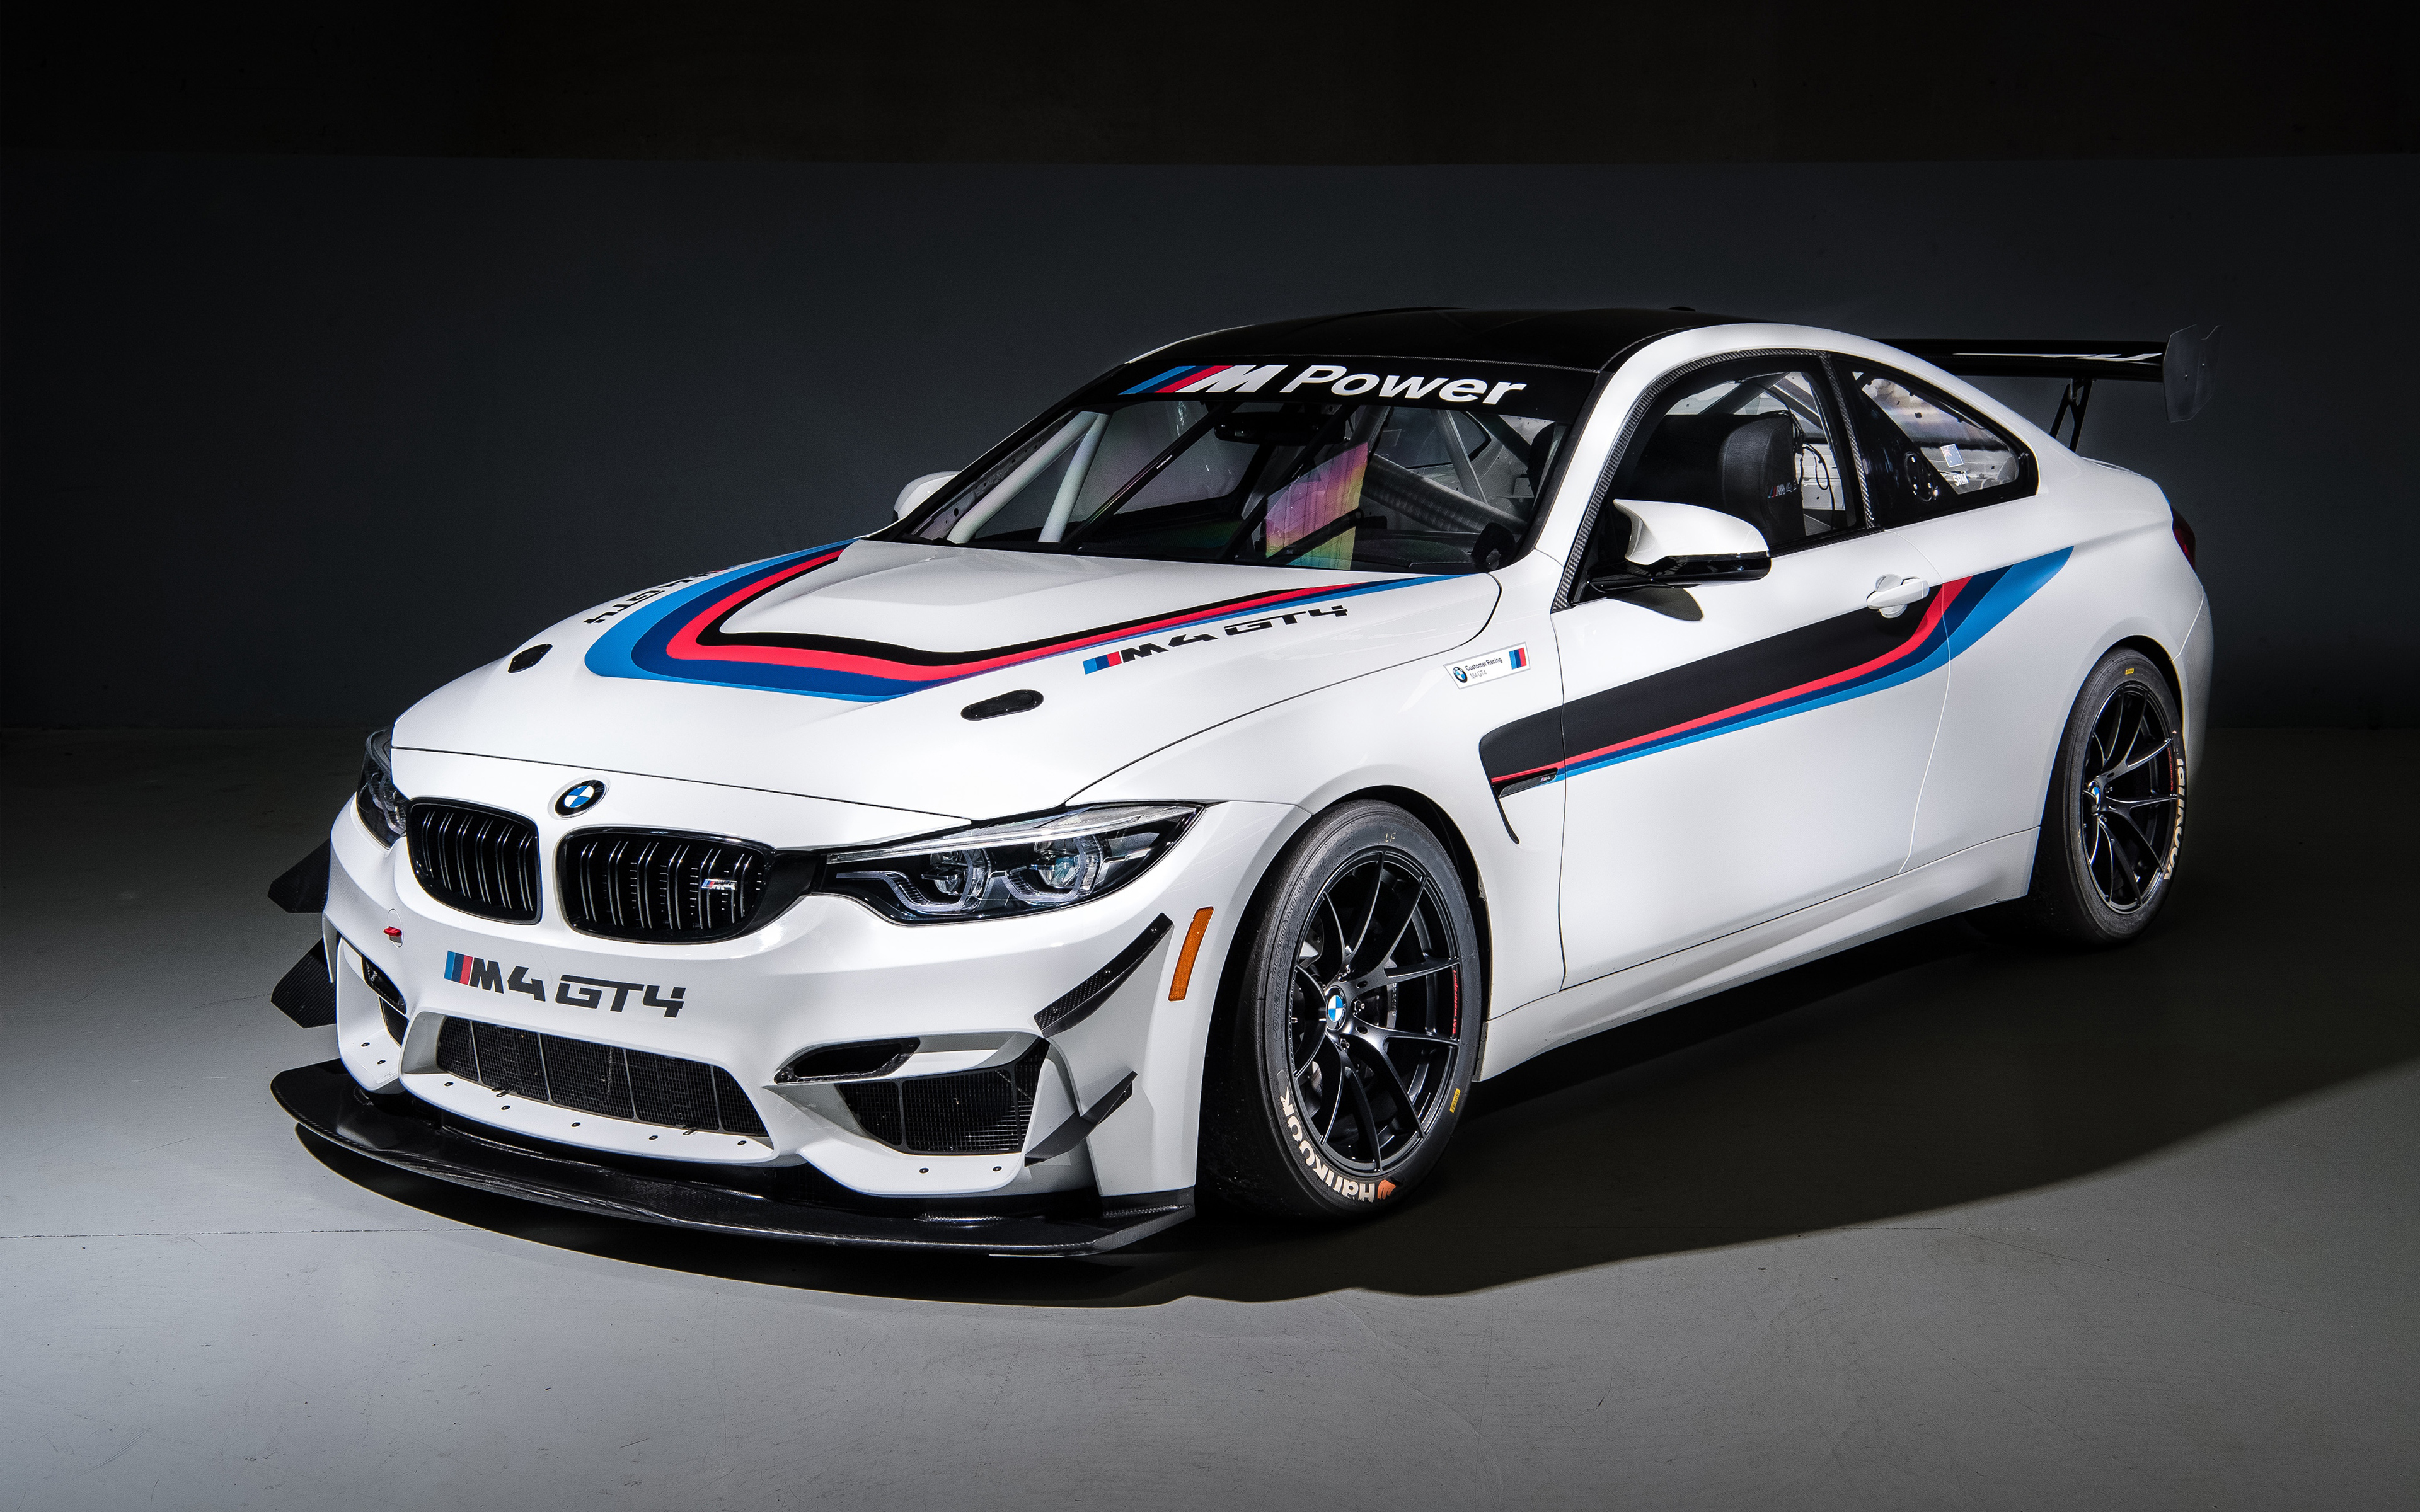 bmw m4 gt4 2018 4k wallpapers hd wallpapers. Black Bedroom Furniture Sets. Home Design Ideas